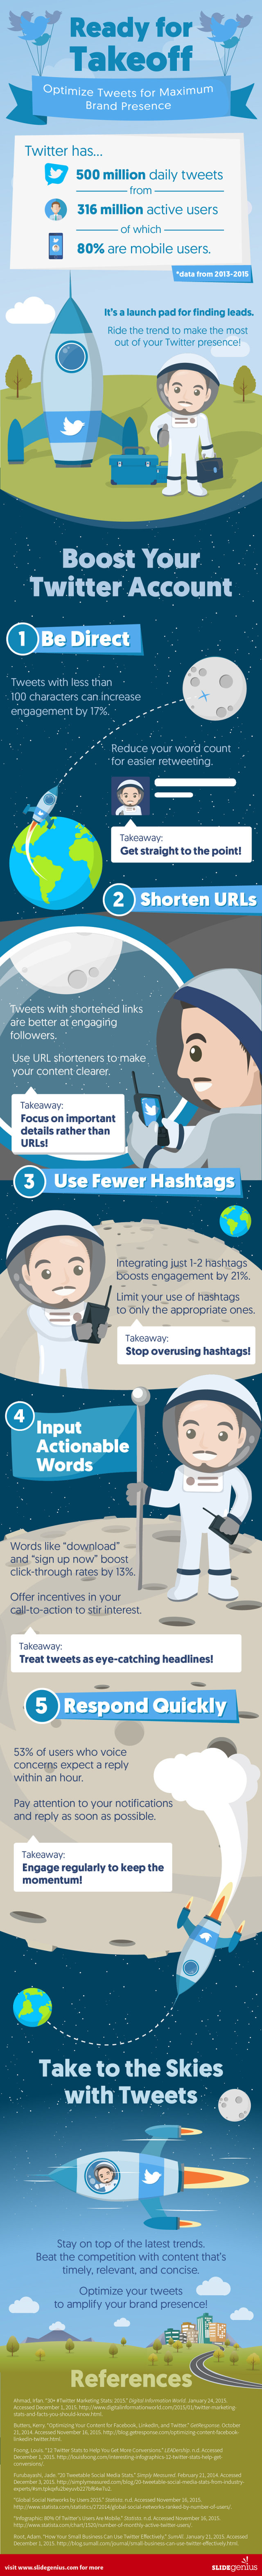 Tips for #Twitter #Marketing in 2016 #Infographic #SMM